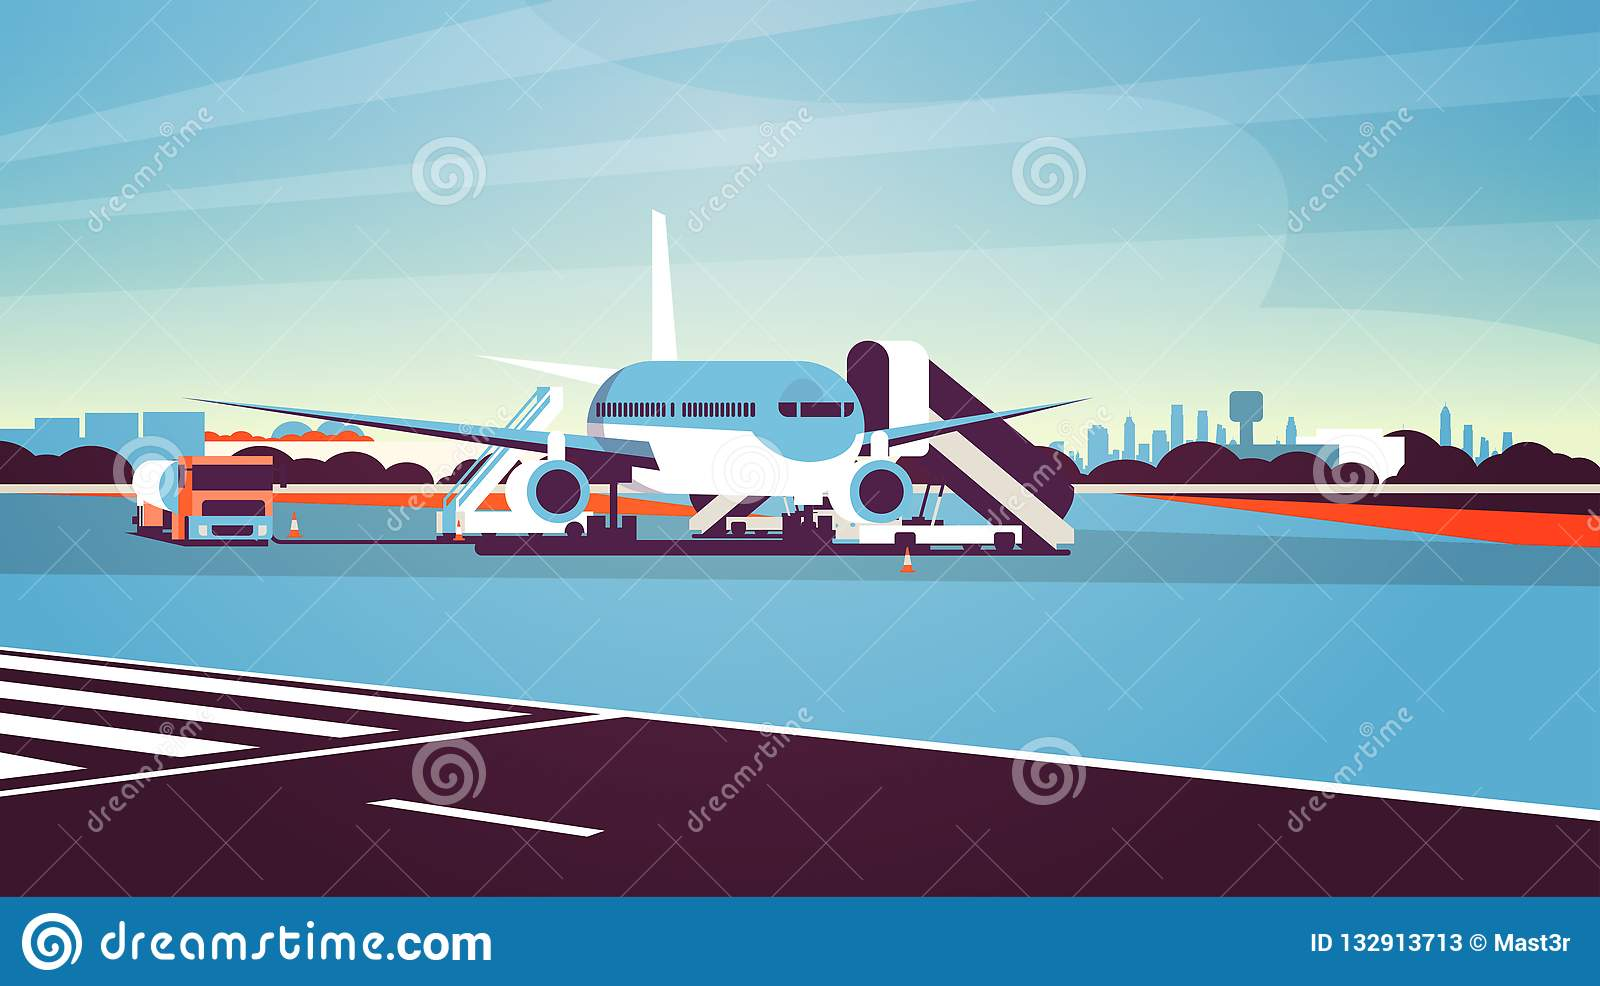 Airport terminal aircraft flying plane taking off waiting to board passengers cityscape background flat horizontal